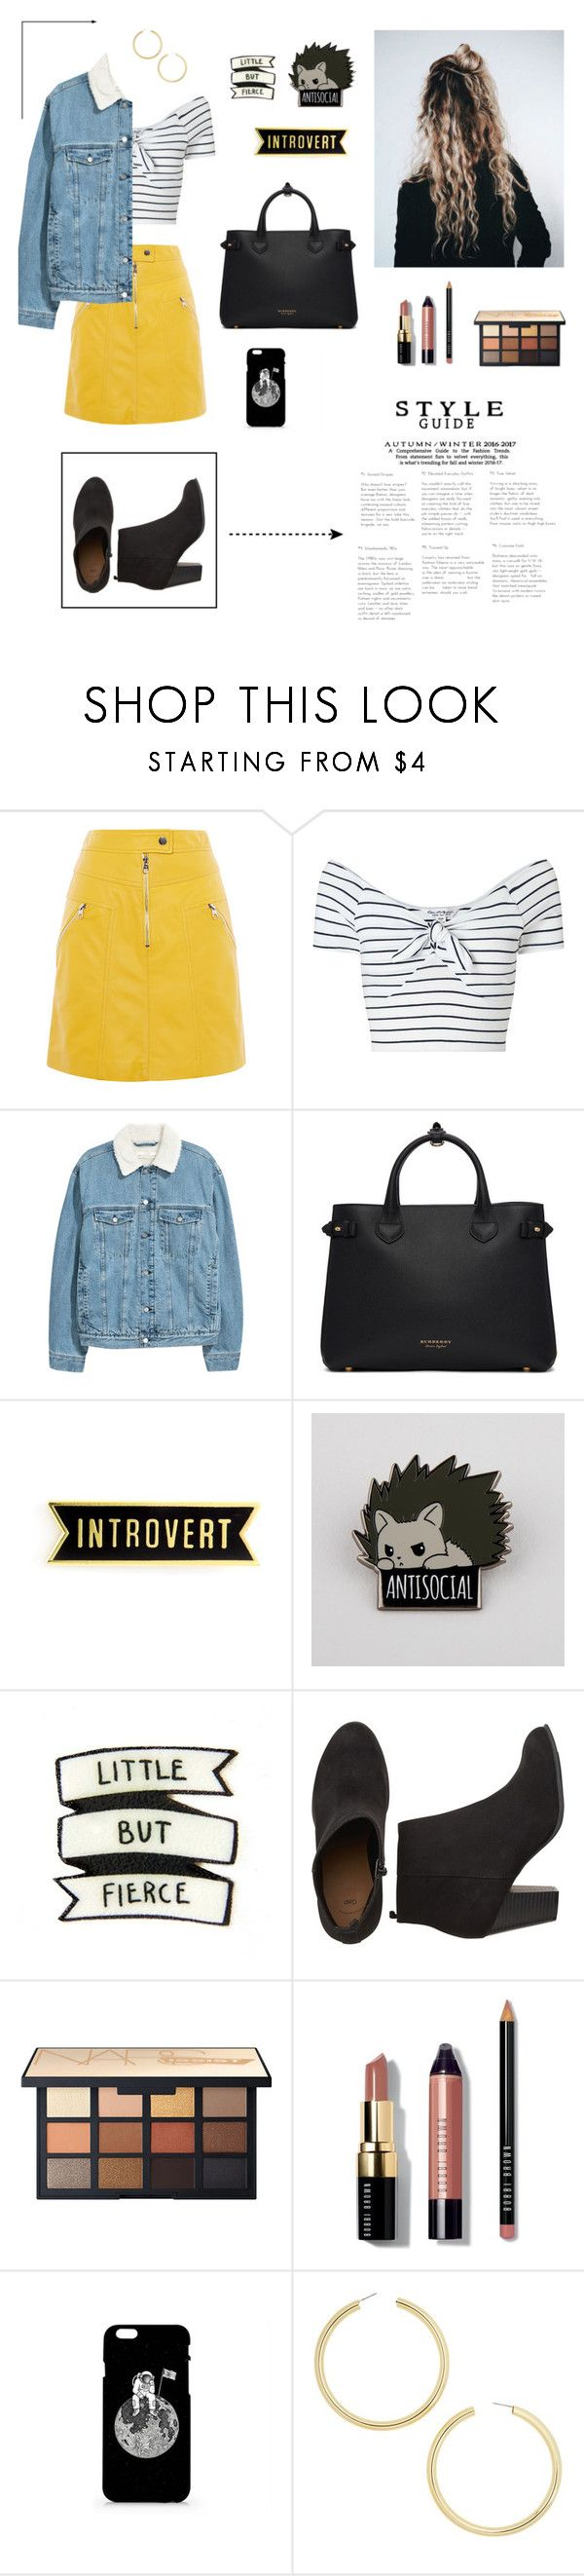 """""""Introverted"""" by grace-melody-smith ❤ liked on Polyvore featuring Karen Millen, Miss Selfridge, Burberry, Avery, Bobbi Brown Cosmetics and BaubleBar"""